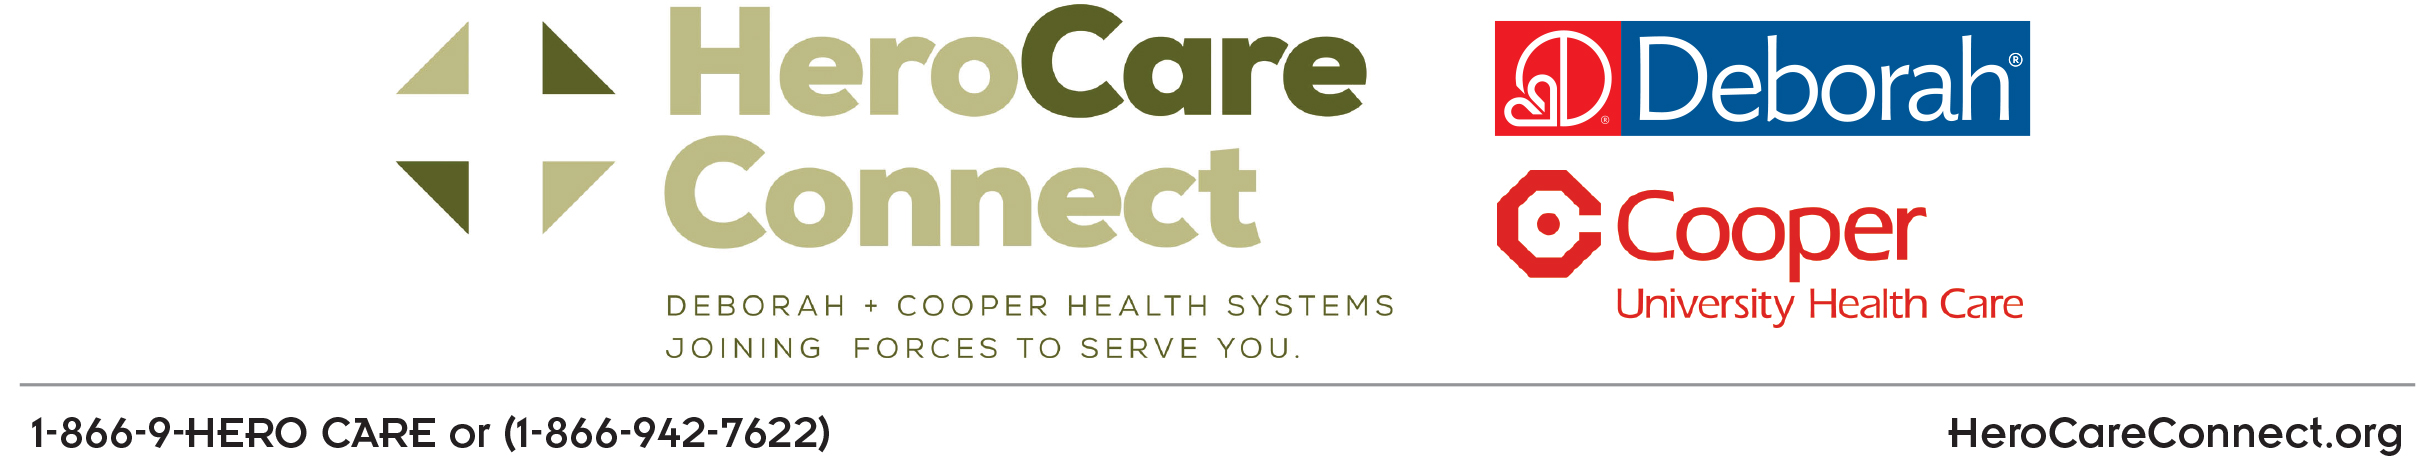 HeroCare Connect